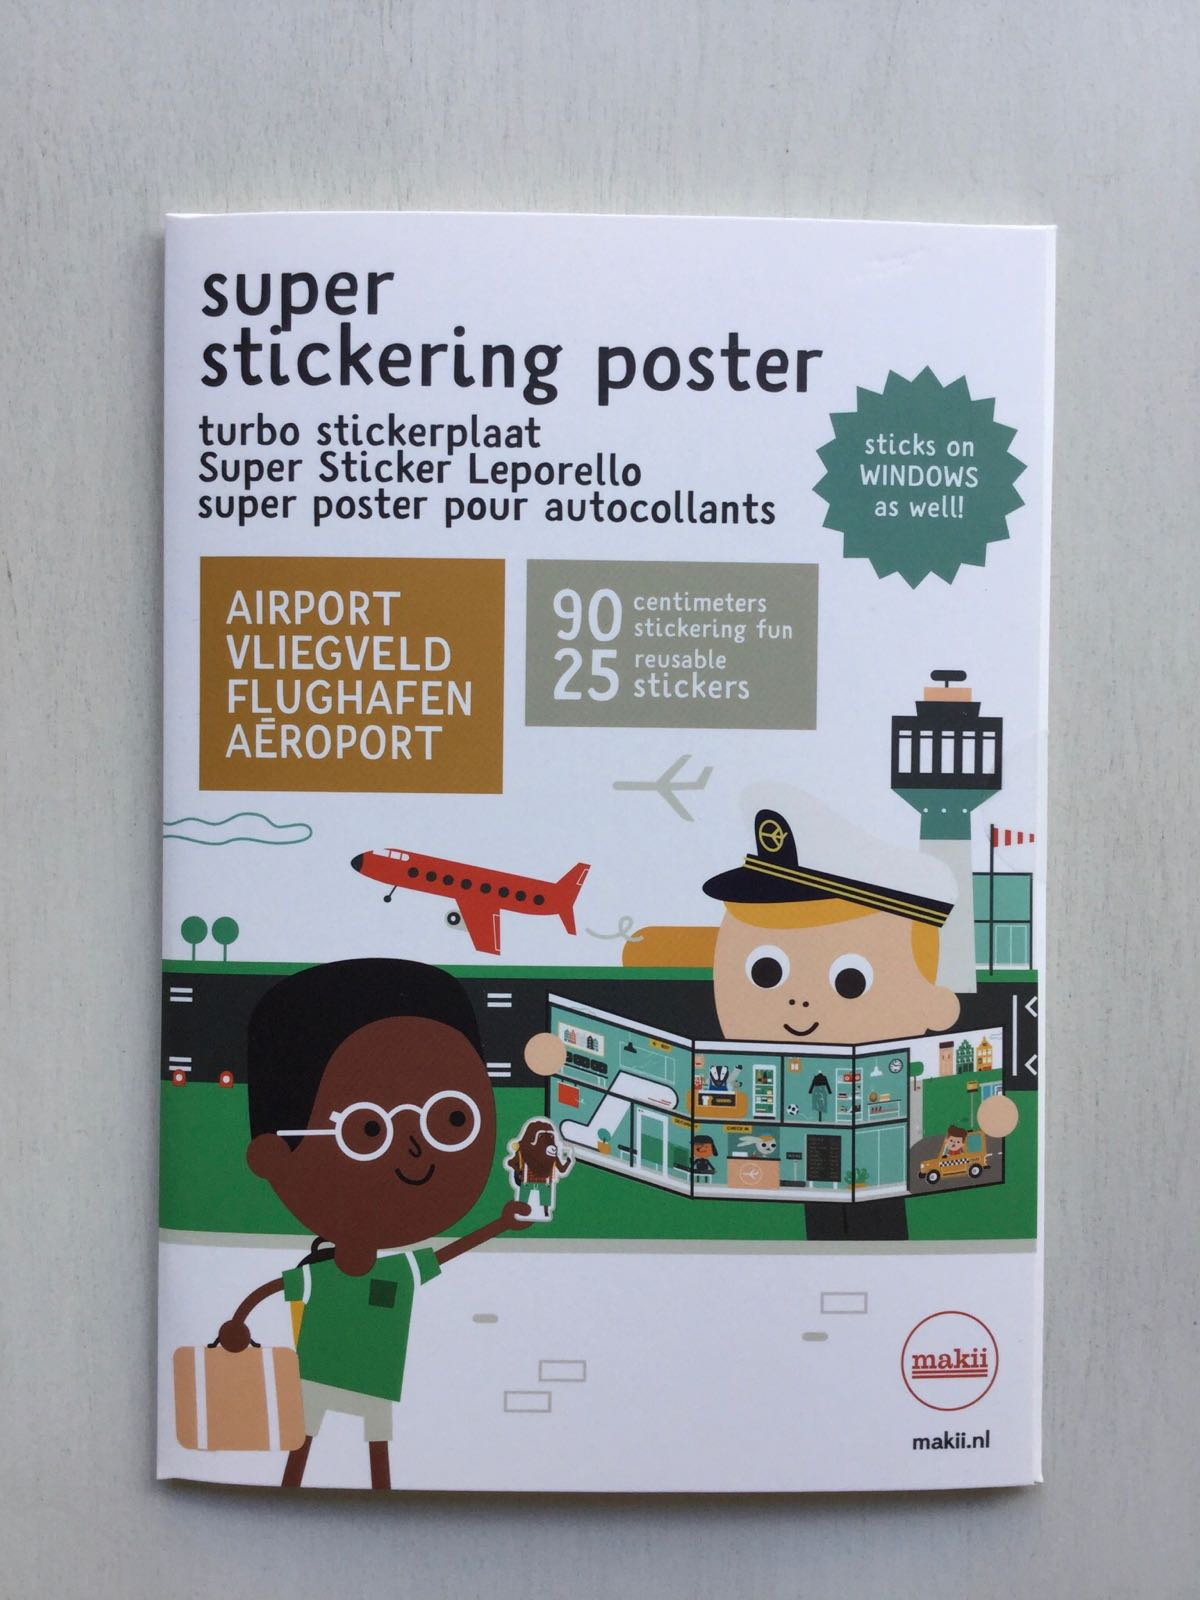 Makii - Super stickering poster - Airport